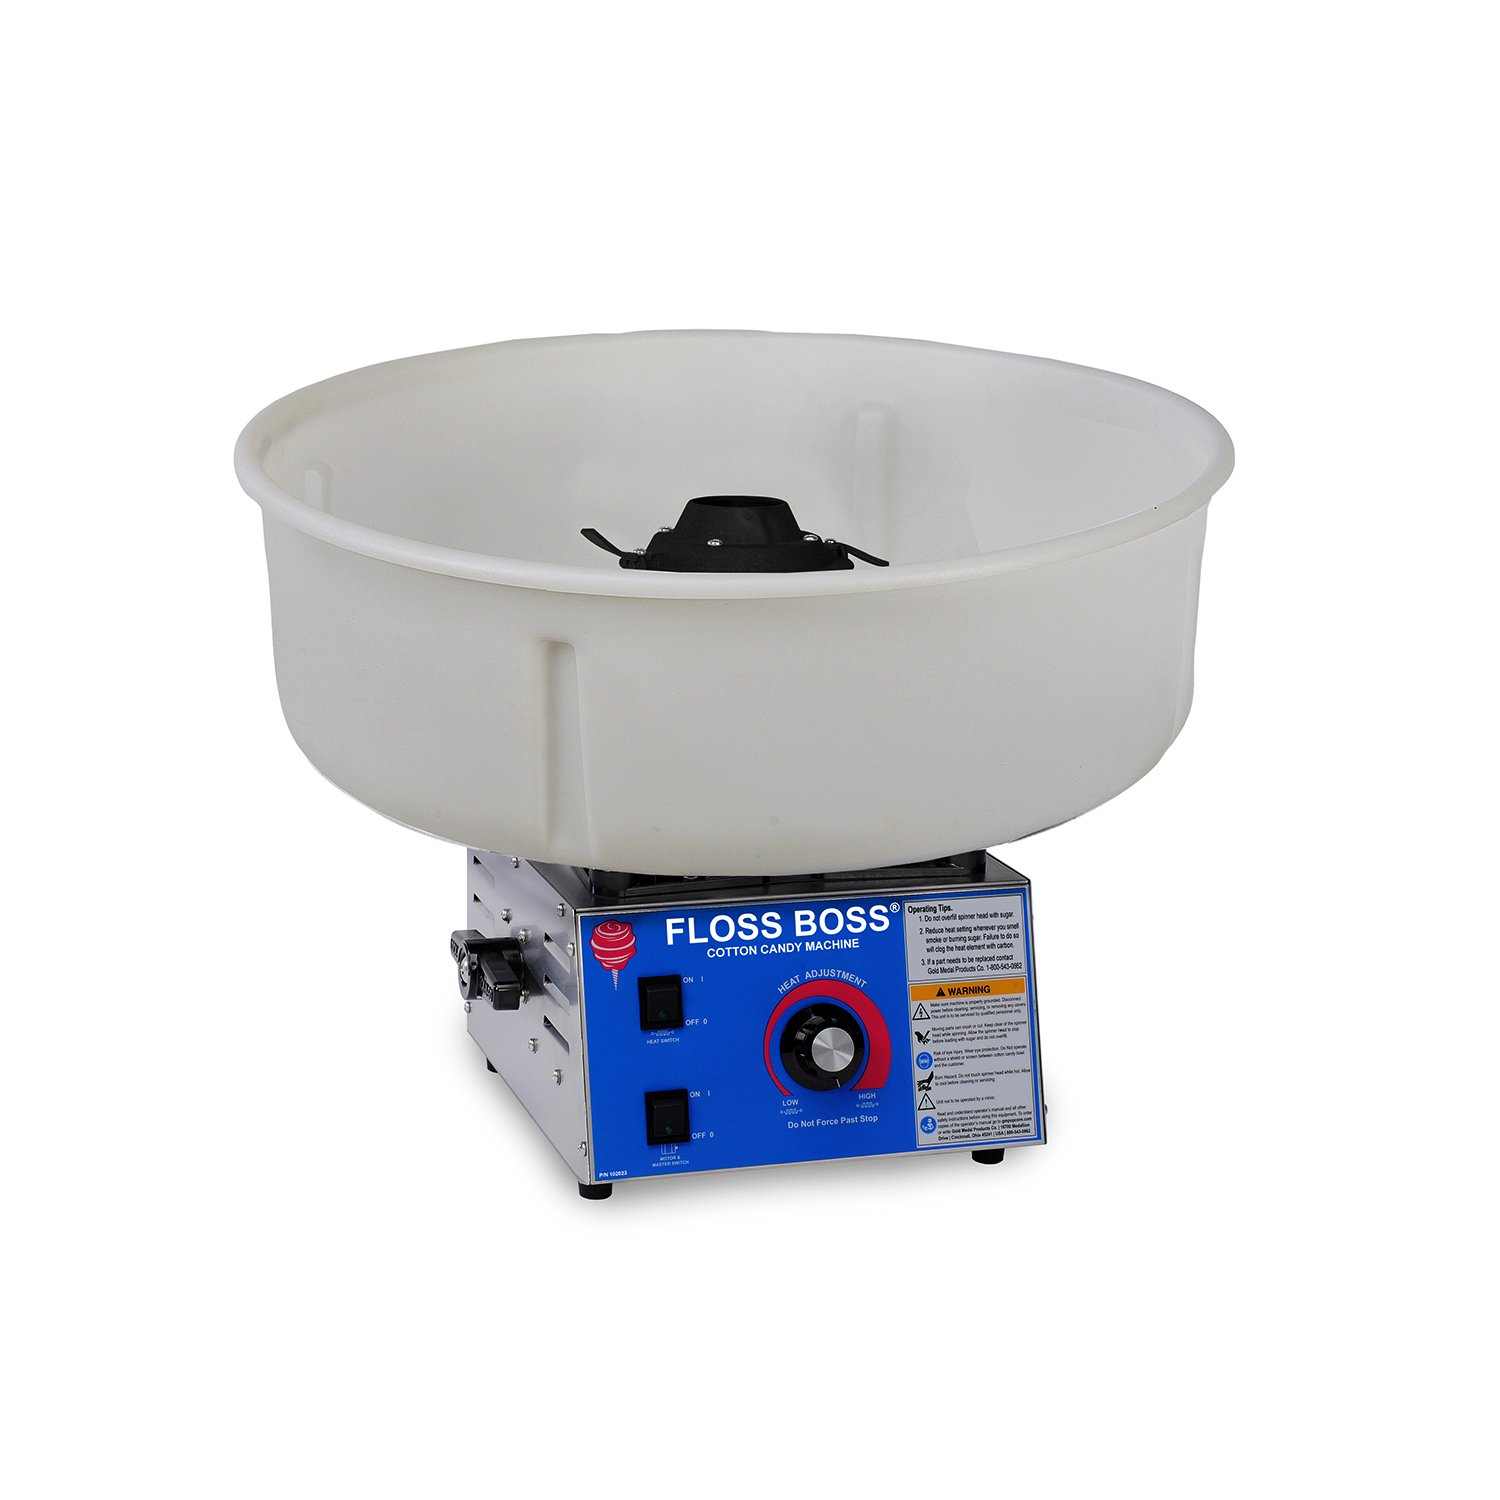 Gold Medal 3024-00-000 Full-Size Floss Boss Cotton Candy Machine